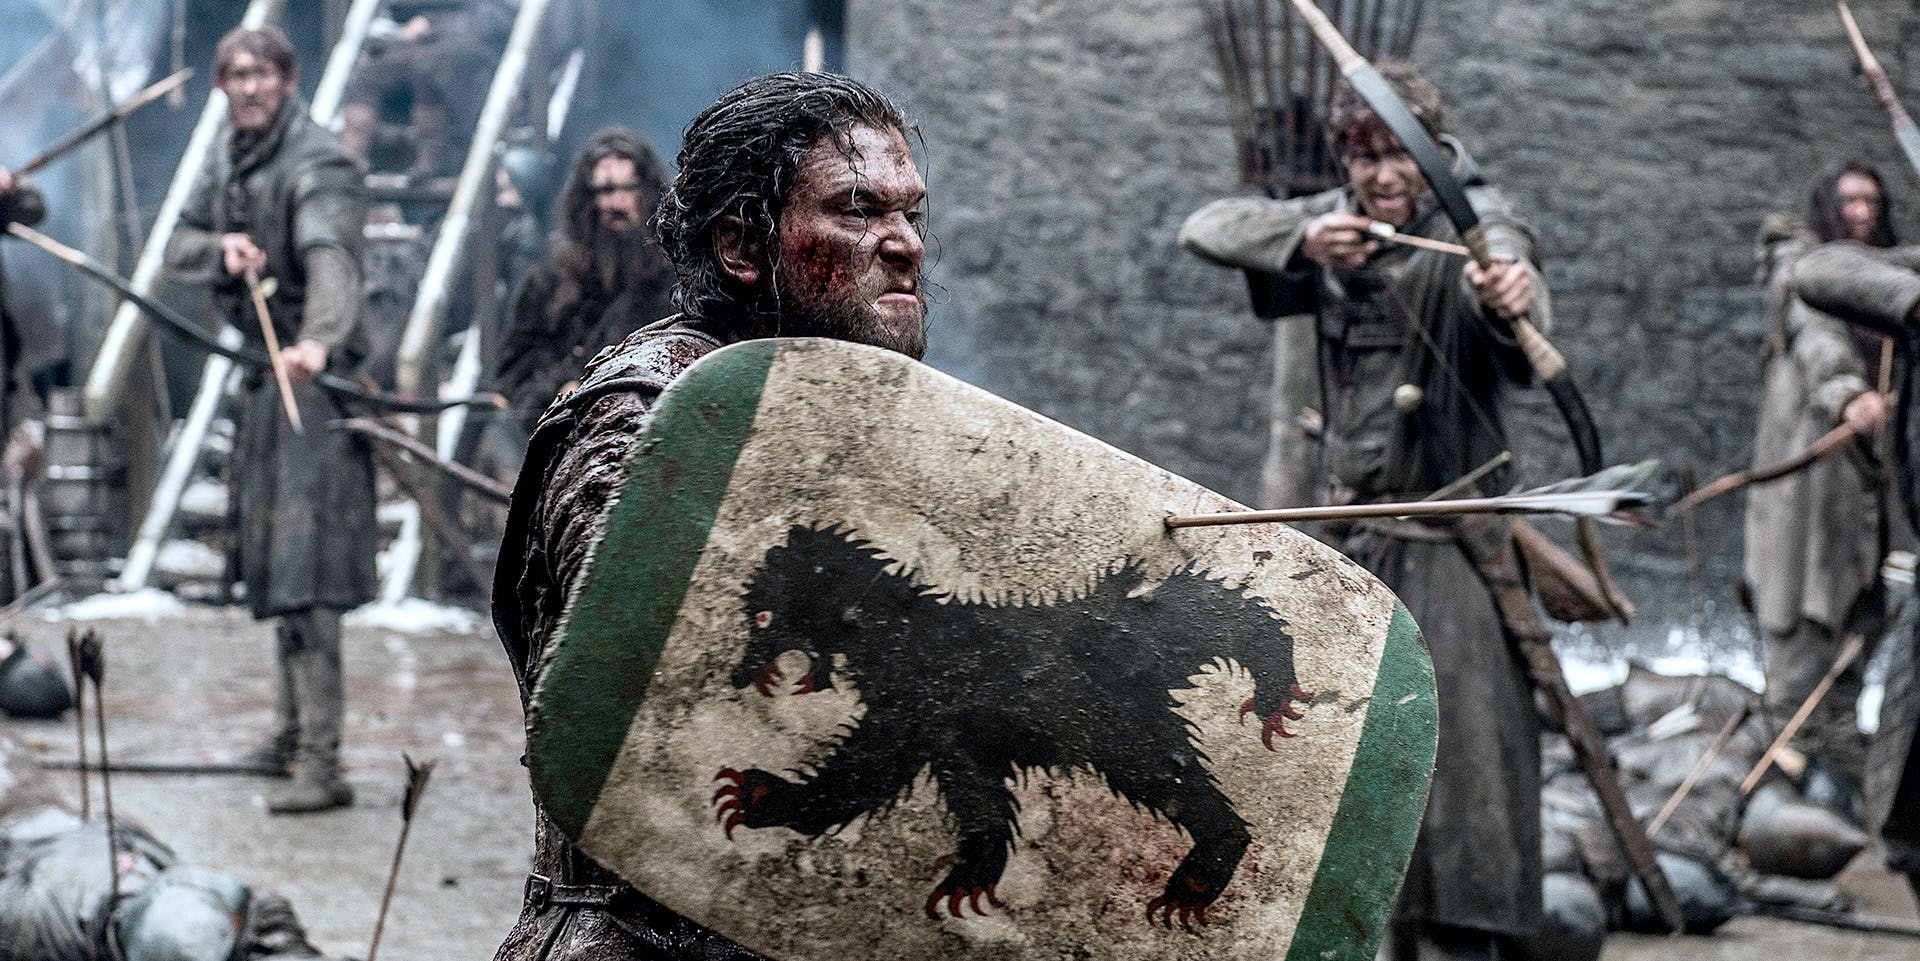 Jon Snow takes back the North in 'Game of Thrones'